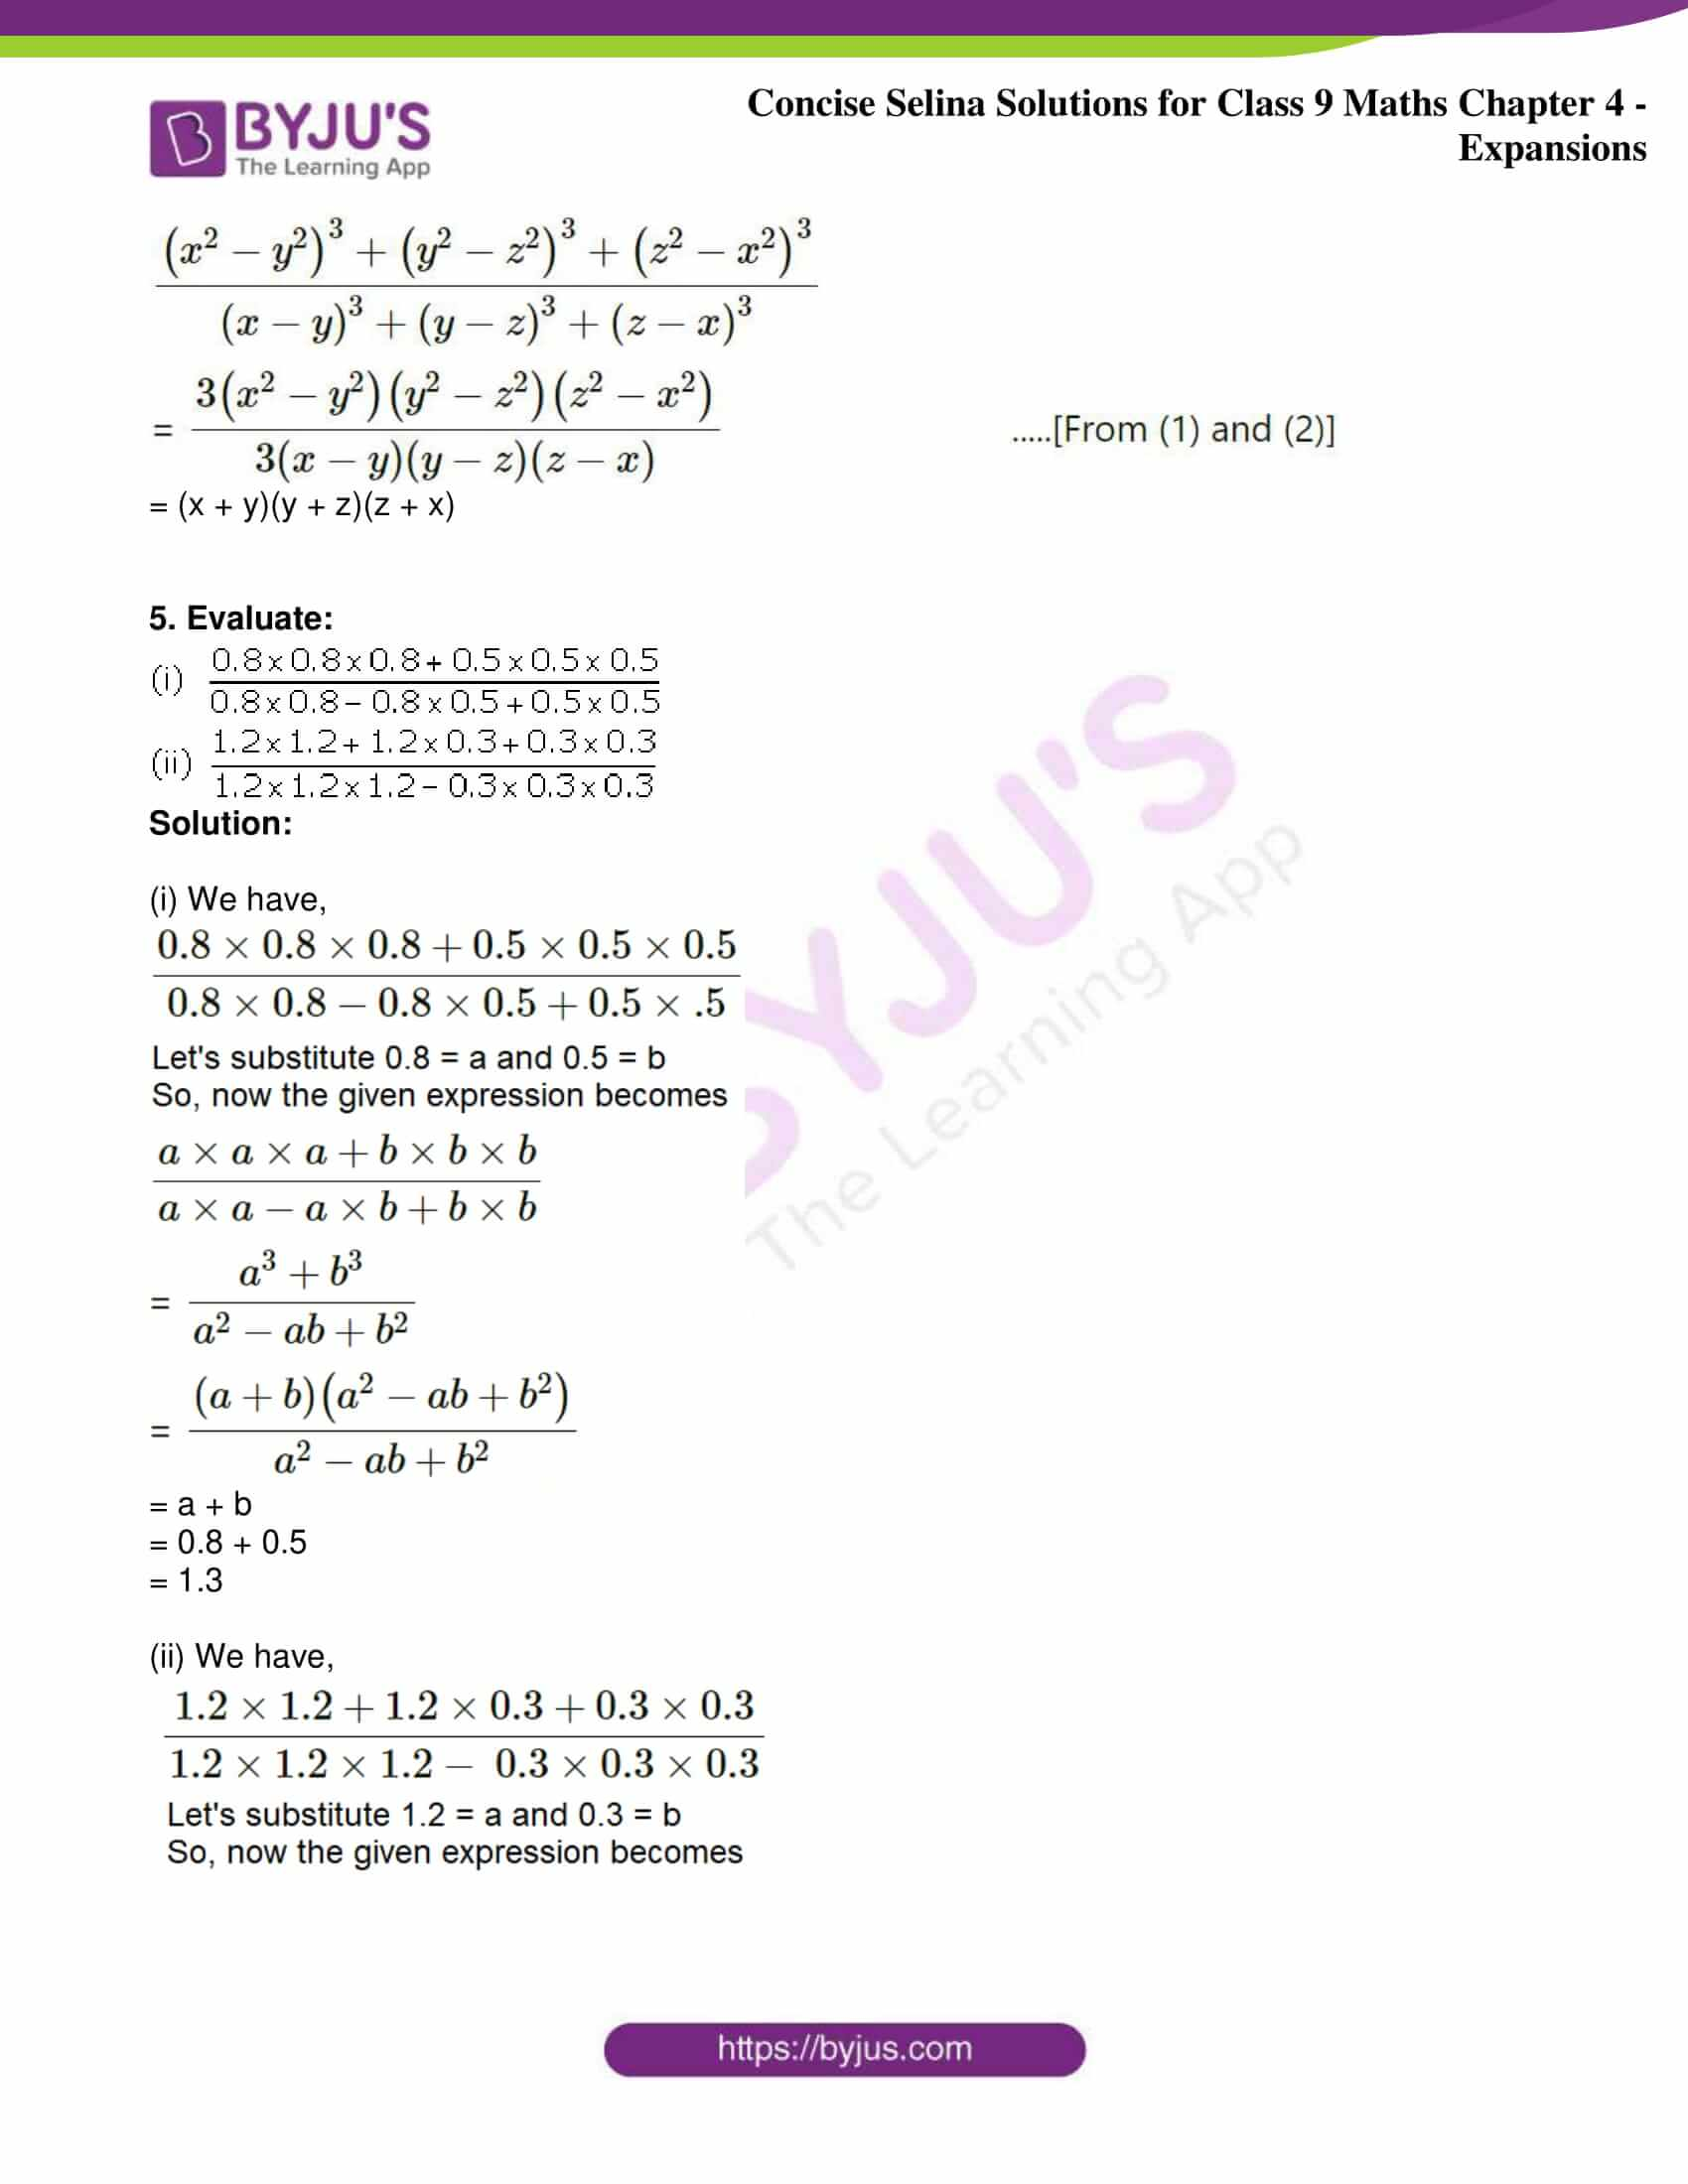 icse class 9 maths may10 selina solutions chapter 4 expansions 31